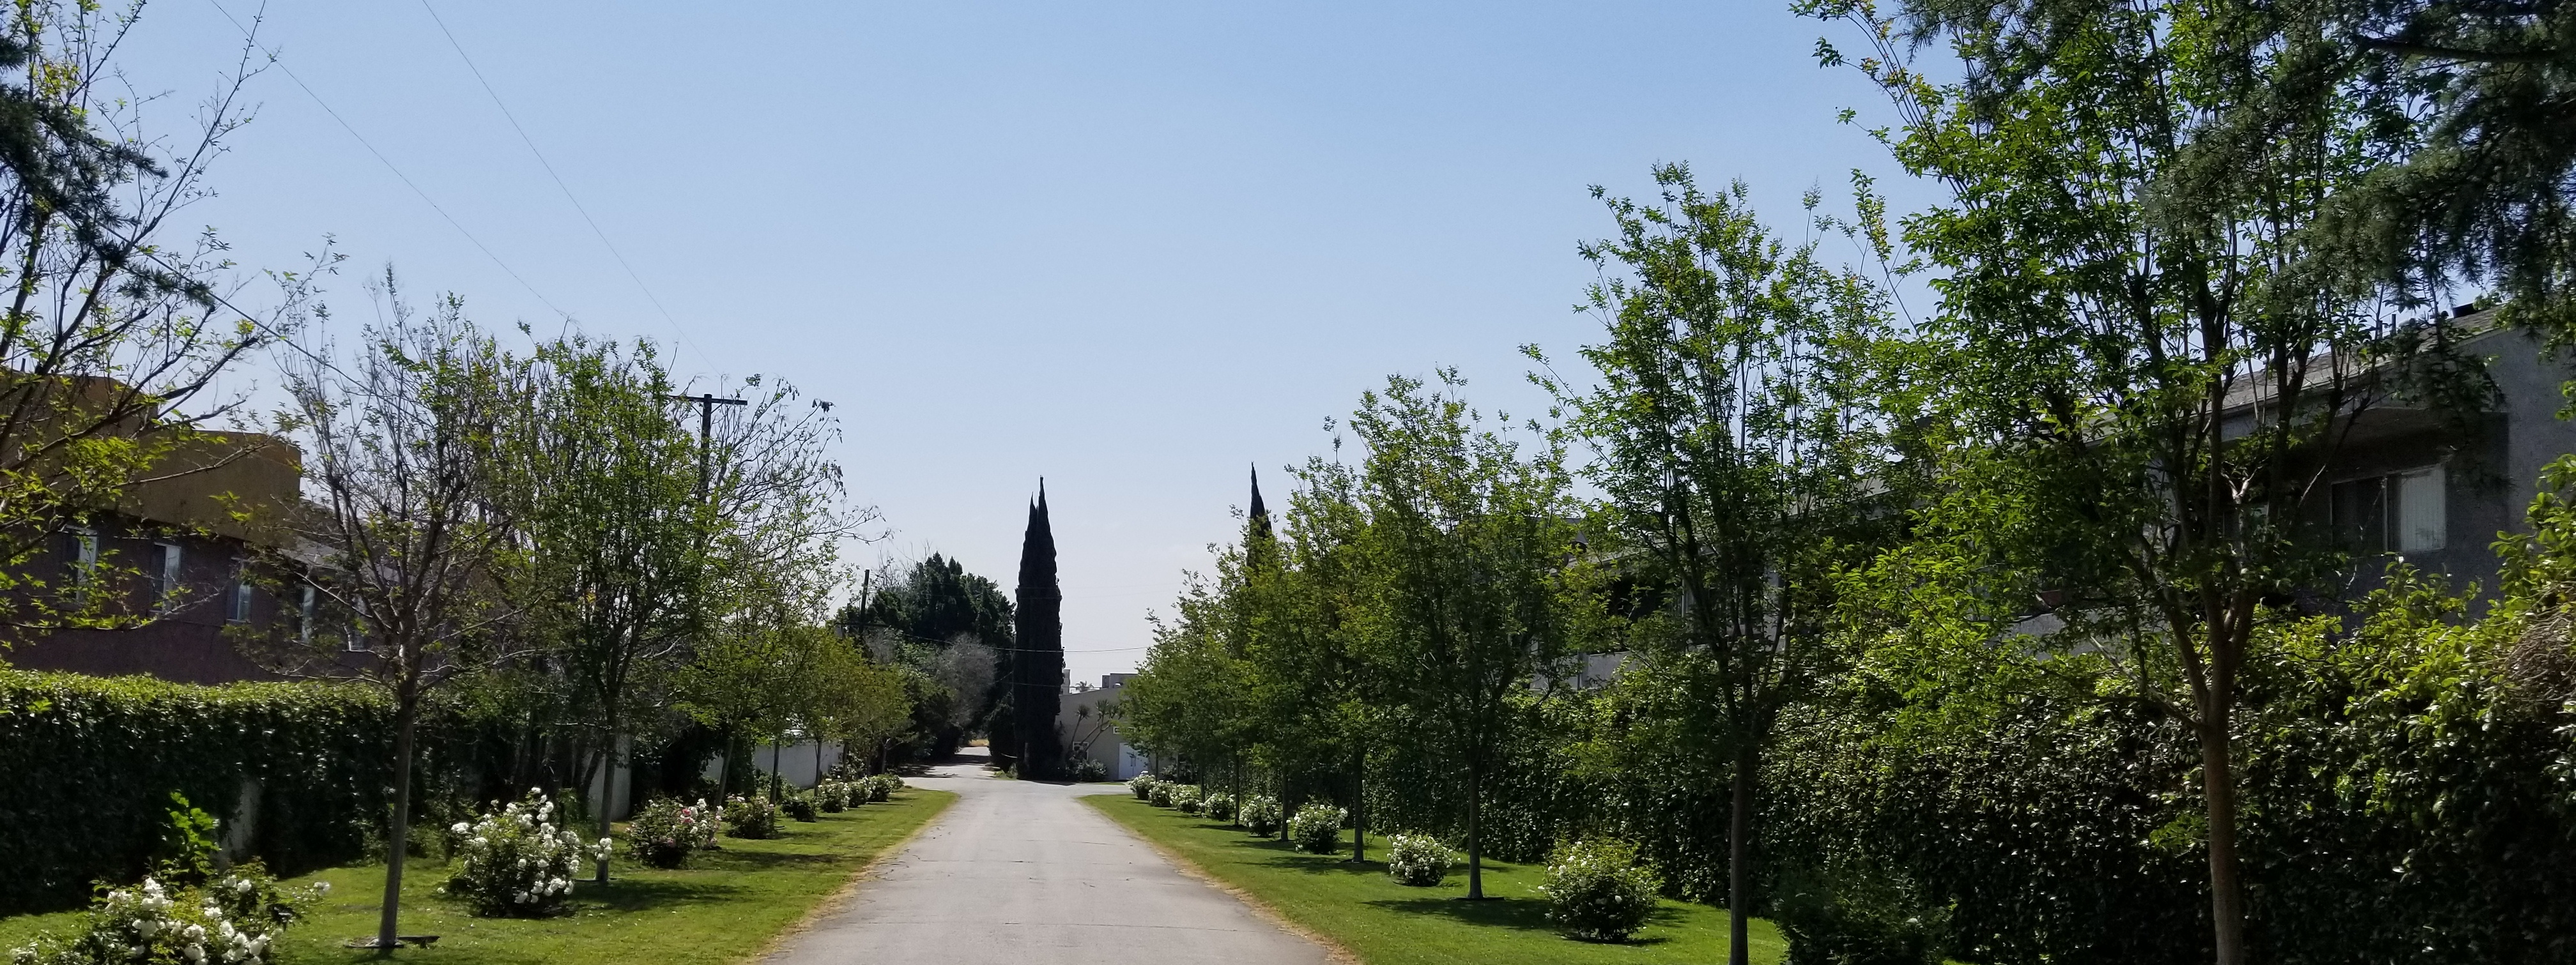 Driveway Entrance Current View